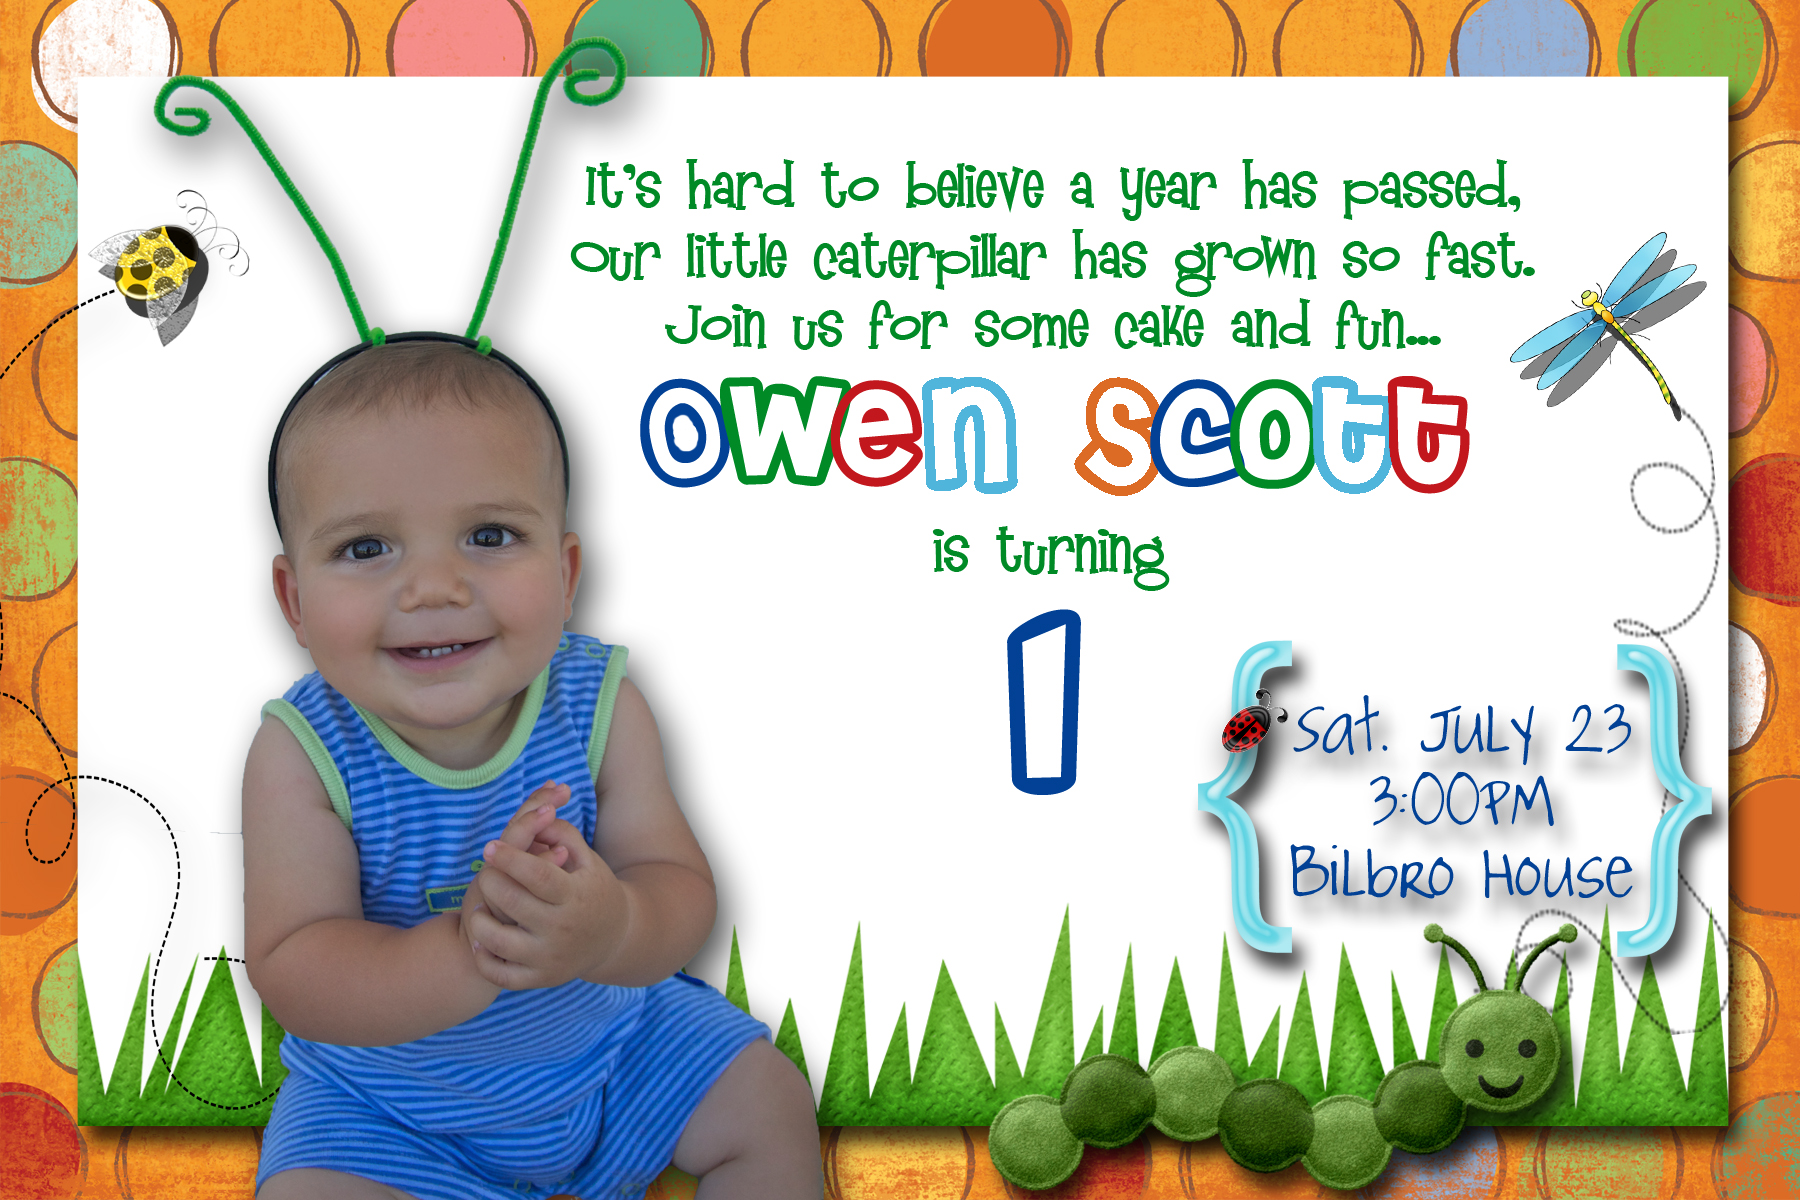 invitation letter for 1st birthday party ; wording-1st-birthday-party-invitations-lovely-birthday-invites-collection-design-first-birthday-invitation-of-wording-1st-birthday-party-invitations